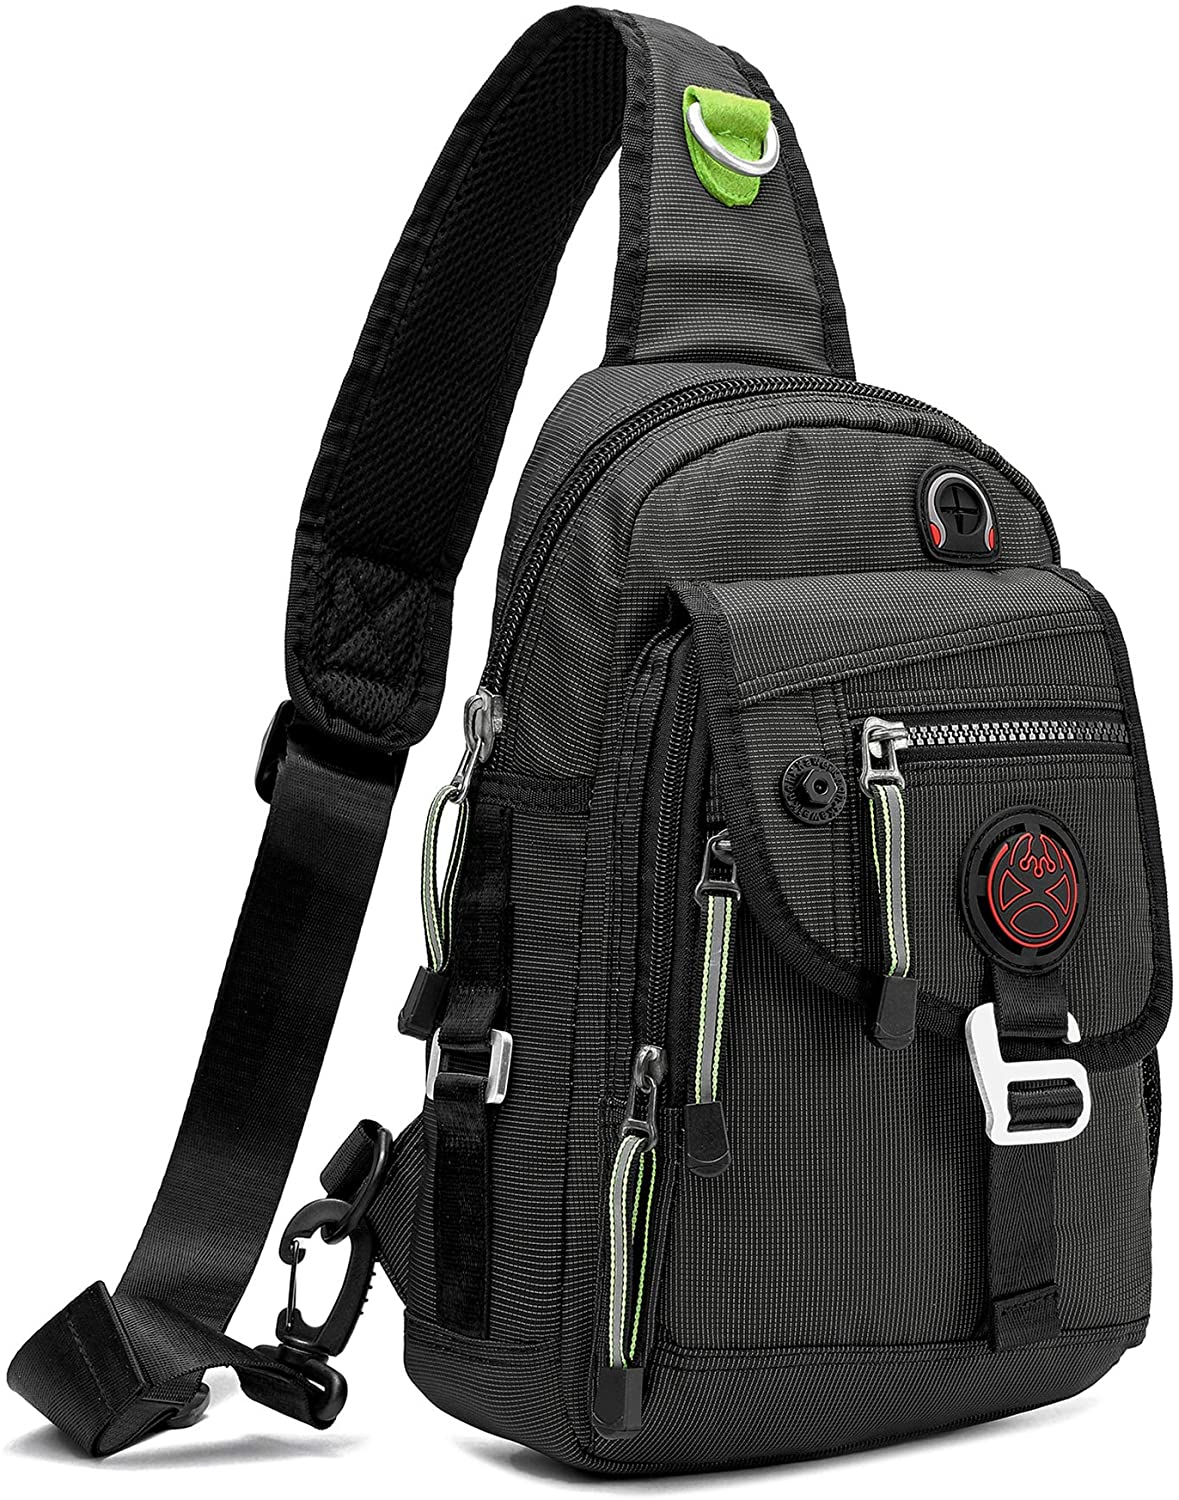 Nicgid Sling Bag Chest Shoulder Clearance SALE Limited time for Bags iPad Crossbody Max 42% OFF Backpack